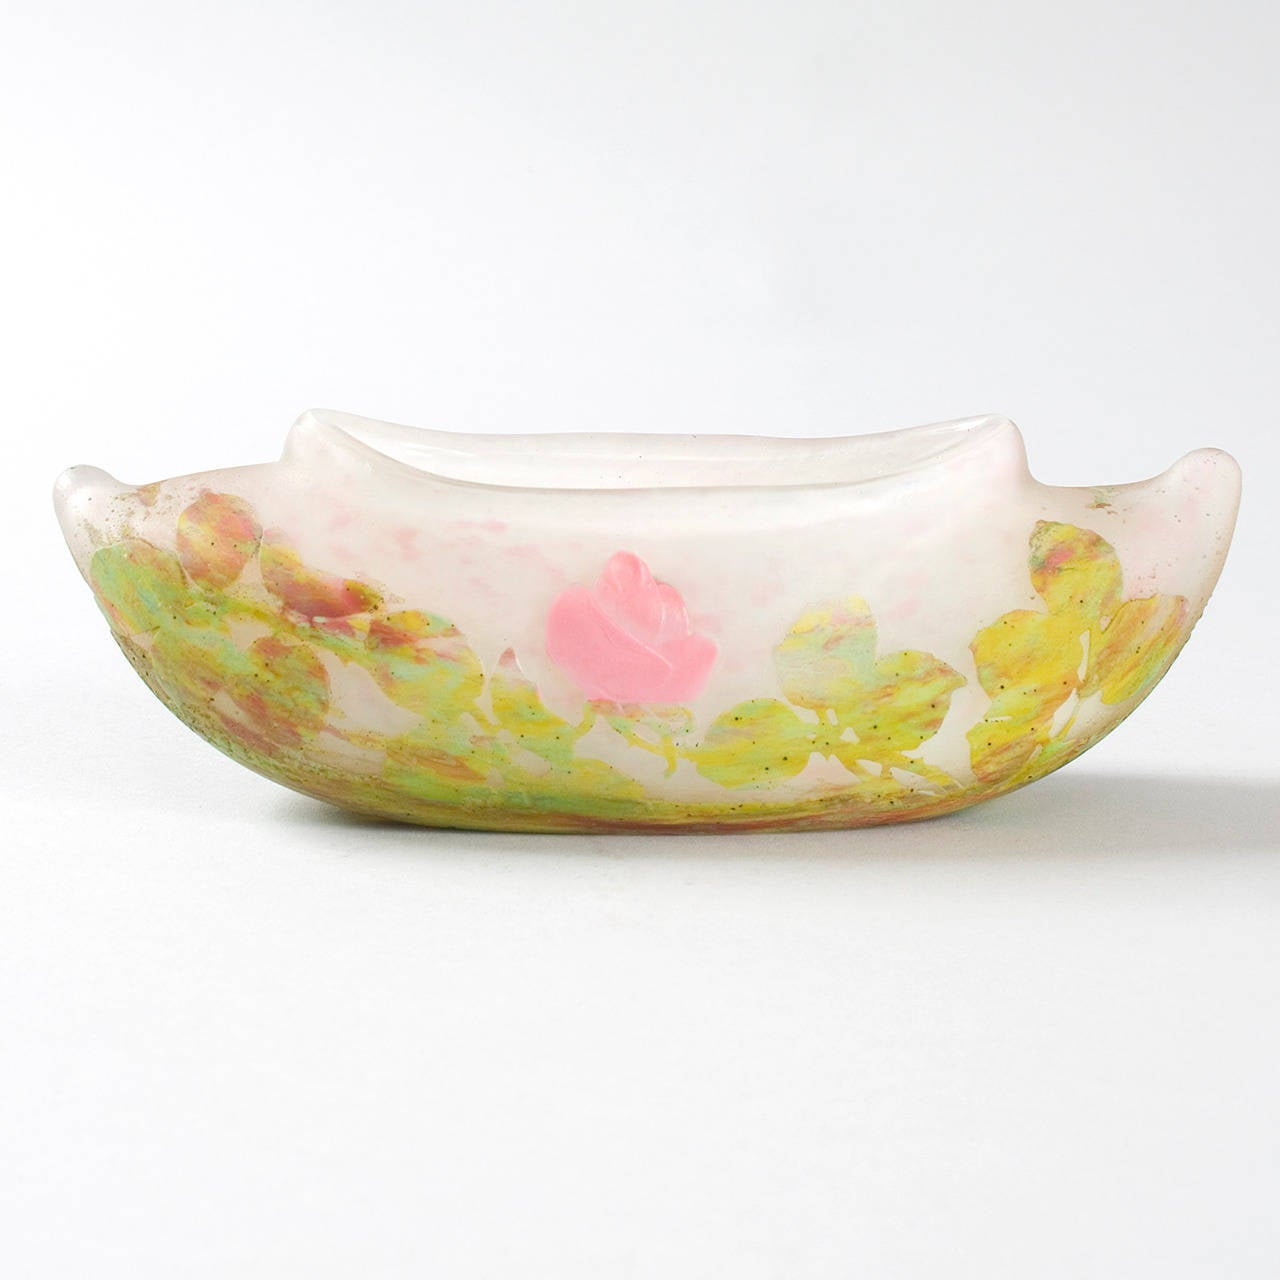 """A French Art Nouveau cameo glass boat-form vase by Daum, featuring an applied wheel-carved pink flowers and etched green leaves. This small, delicate vase has an unusual shape.  Circa 1900.  Signed, """"Daum Nancy"""" with the Croix de Lorraine.   A"""